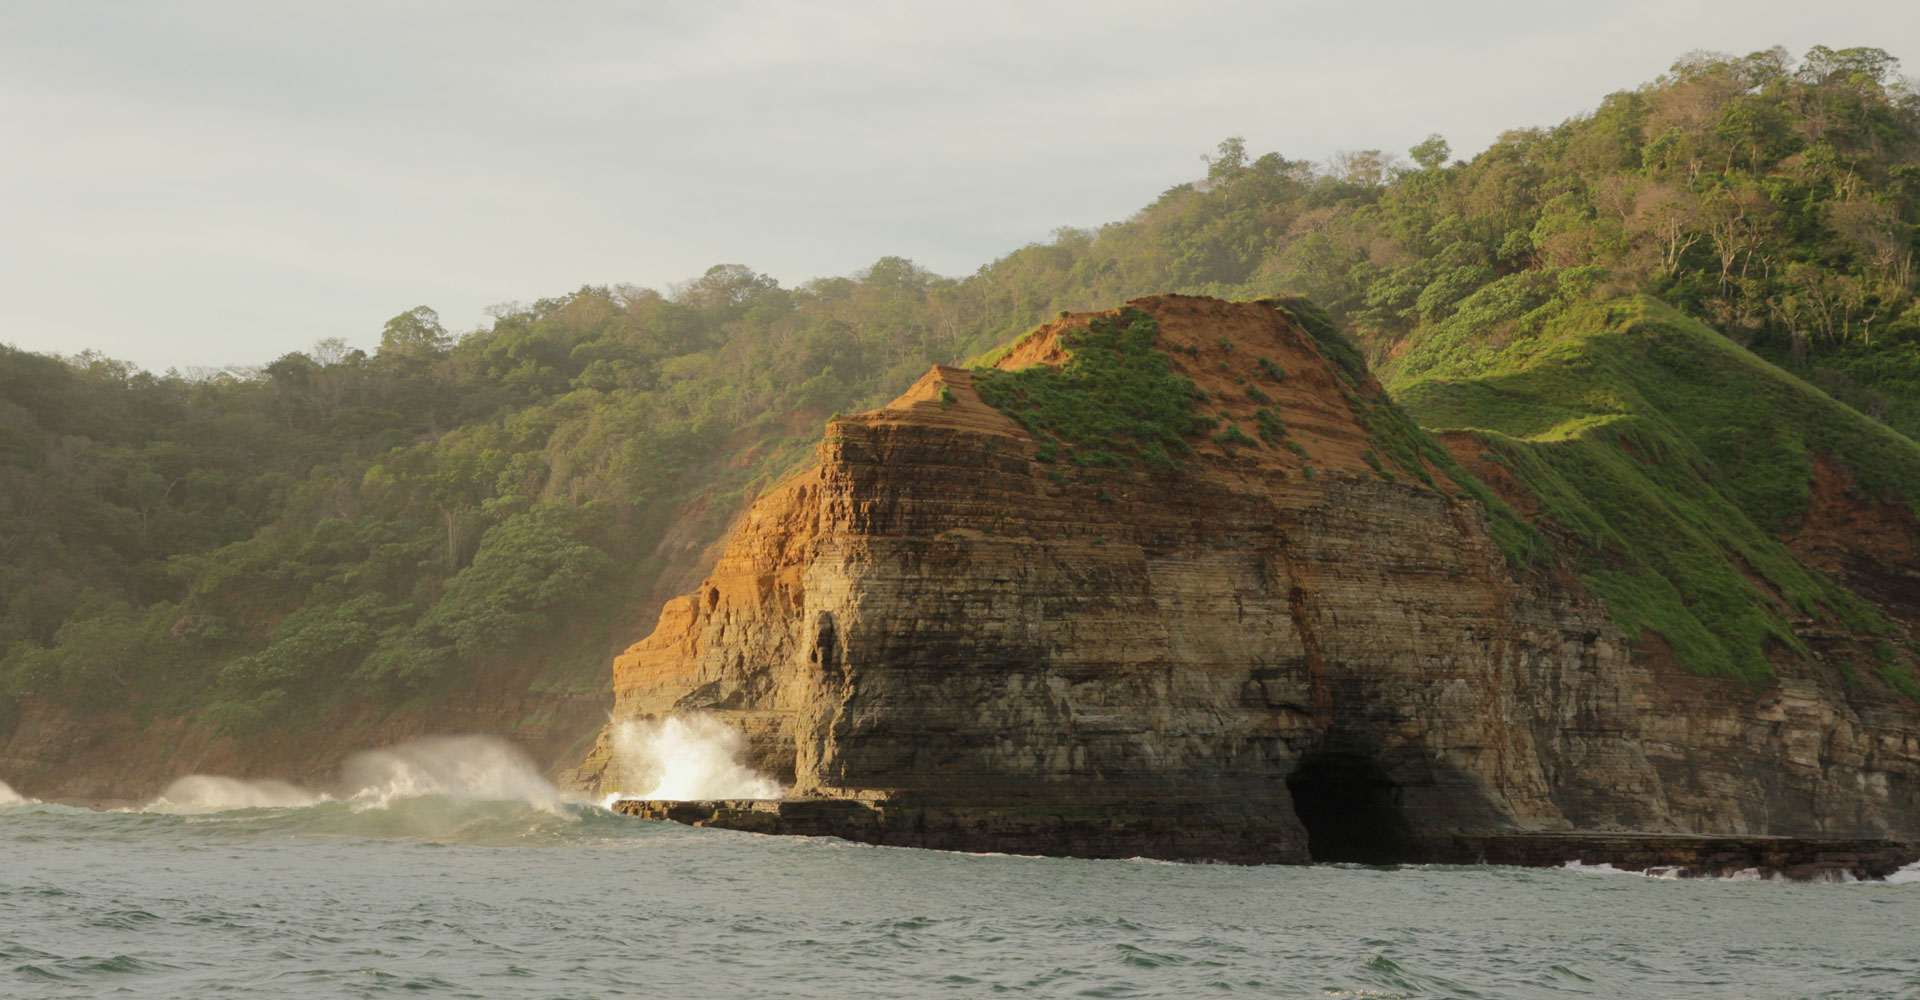 exploration-secret-waves-cave-swimming-nicaragua